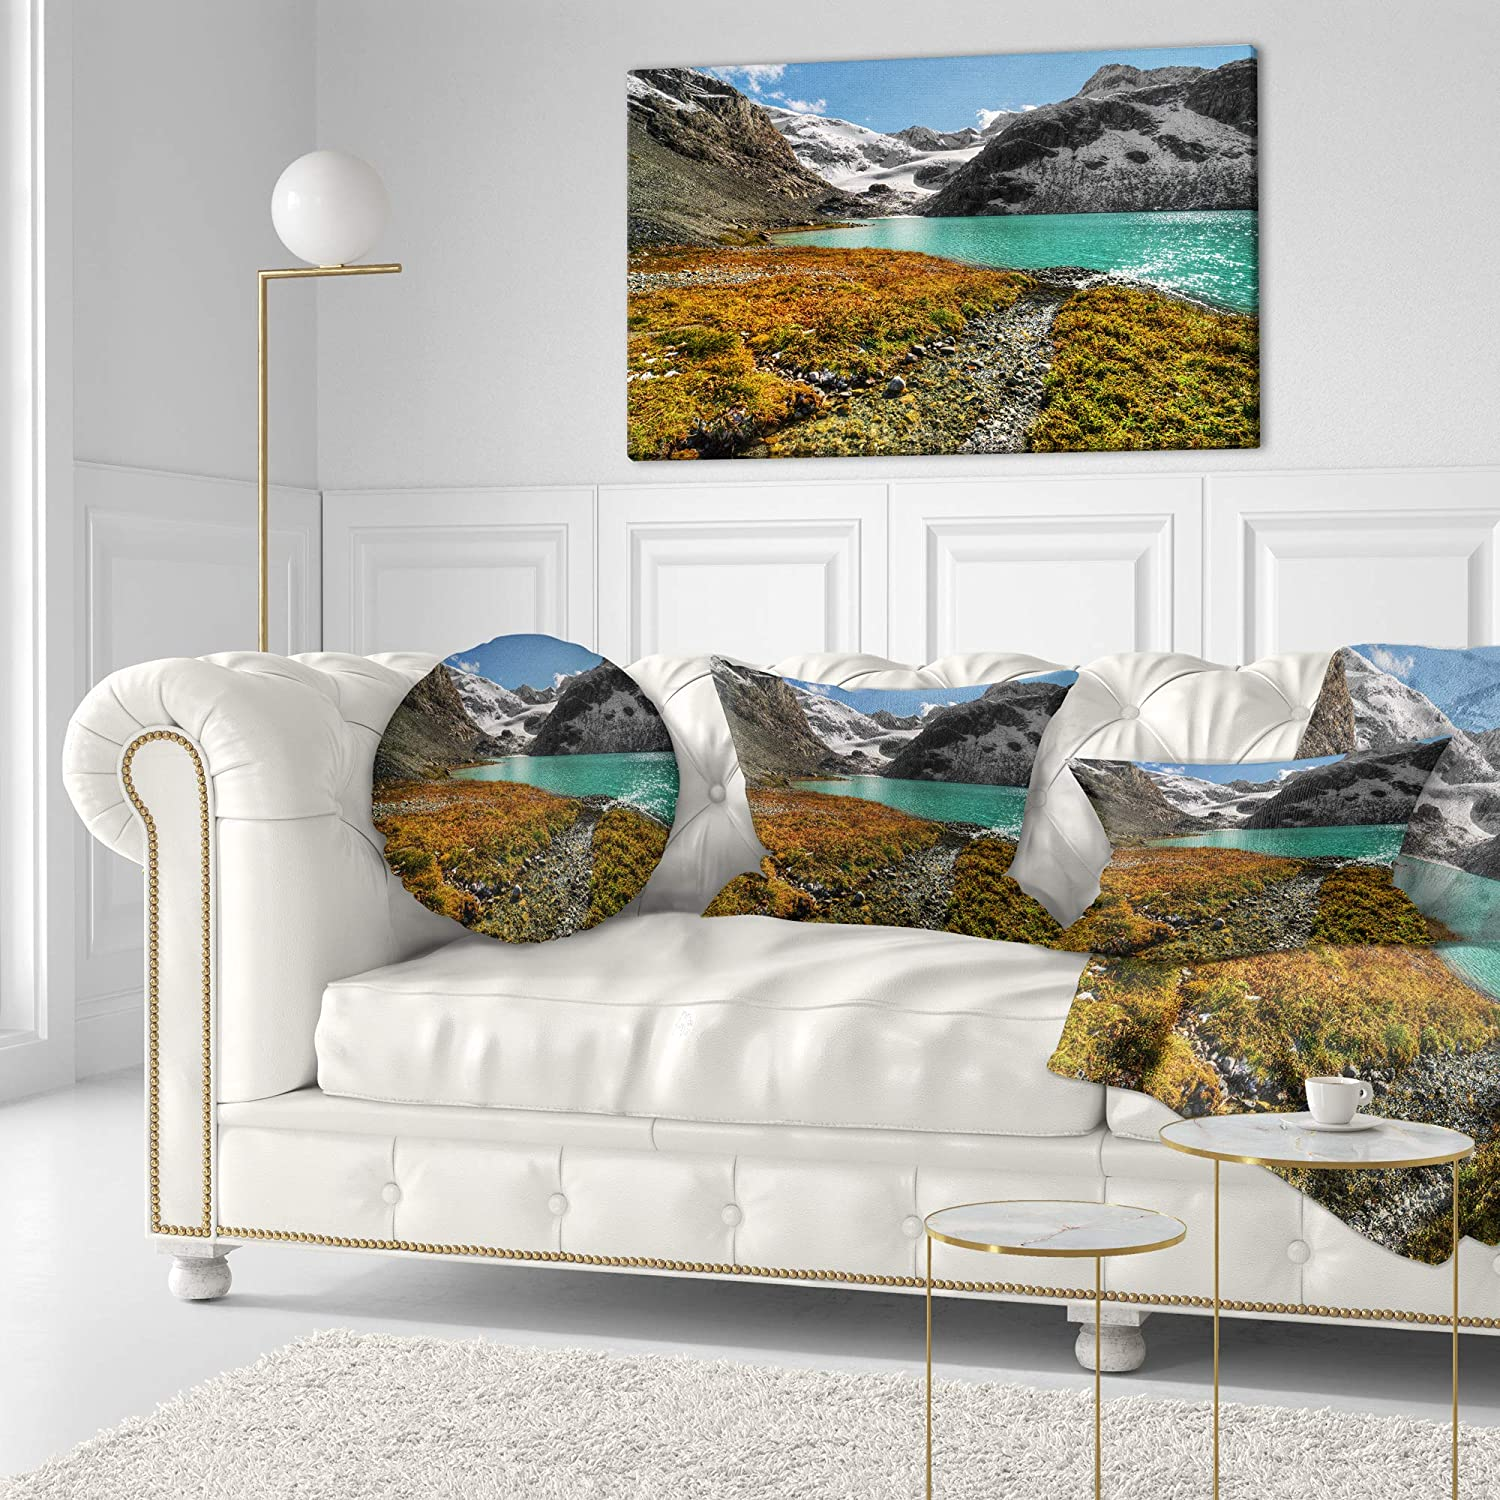 Sofa Throw Pillow 20 Designart Cu14511 20 20 C Crystal Clear Lake Among Mountains Landscape Printed Round Cushion Cover For Living Room Throw Pillow Covers Decorative Pillows Inserts Covers